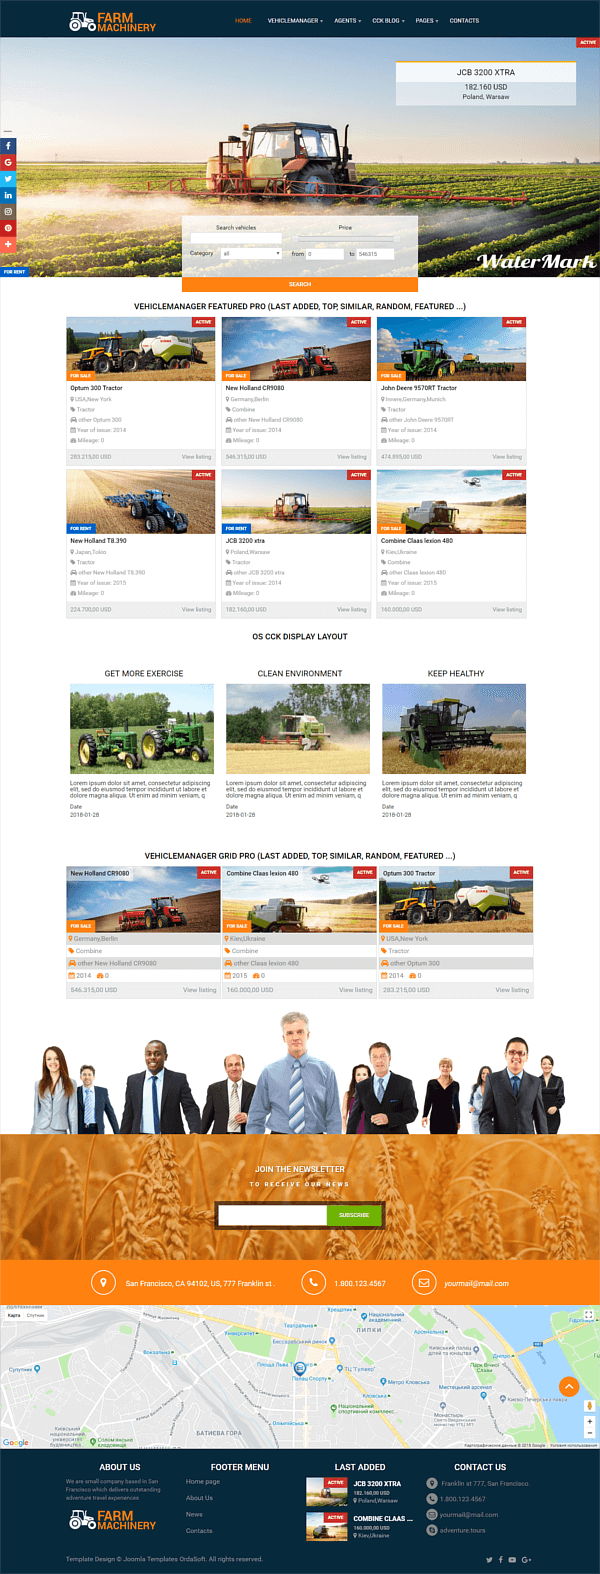 Farm Machinery - agriculture website design